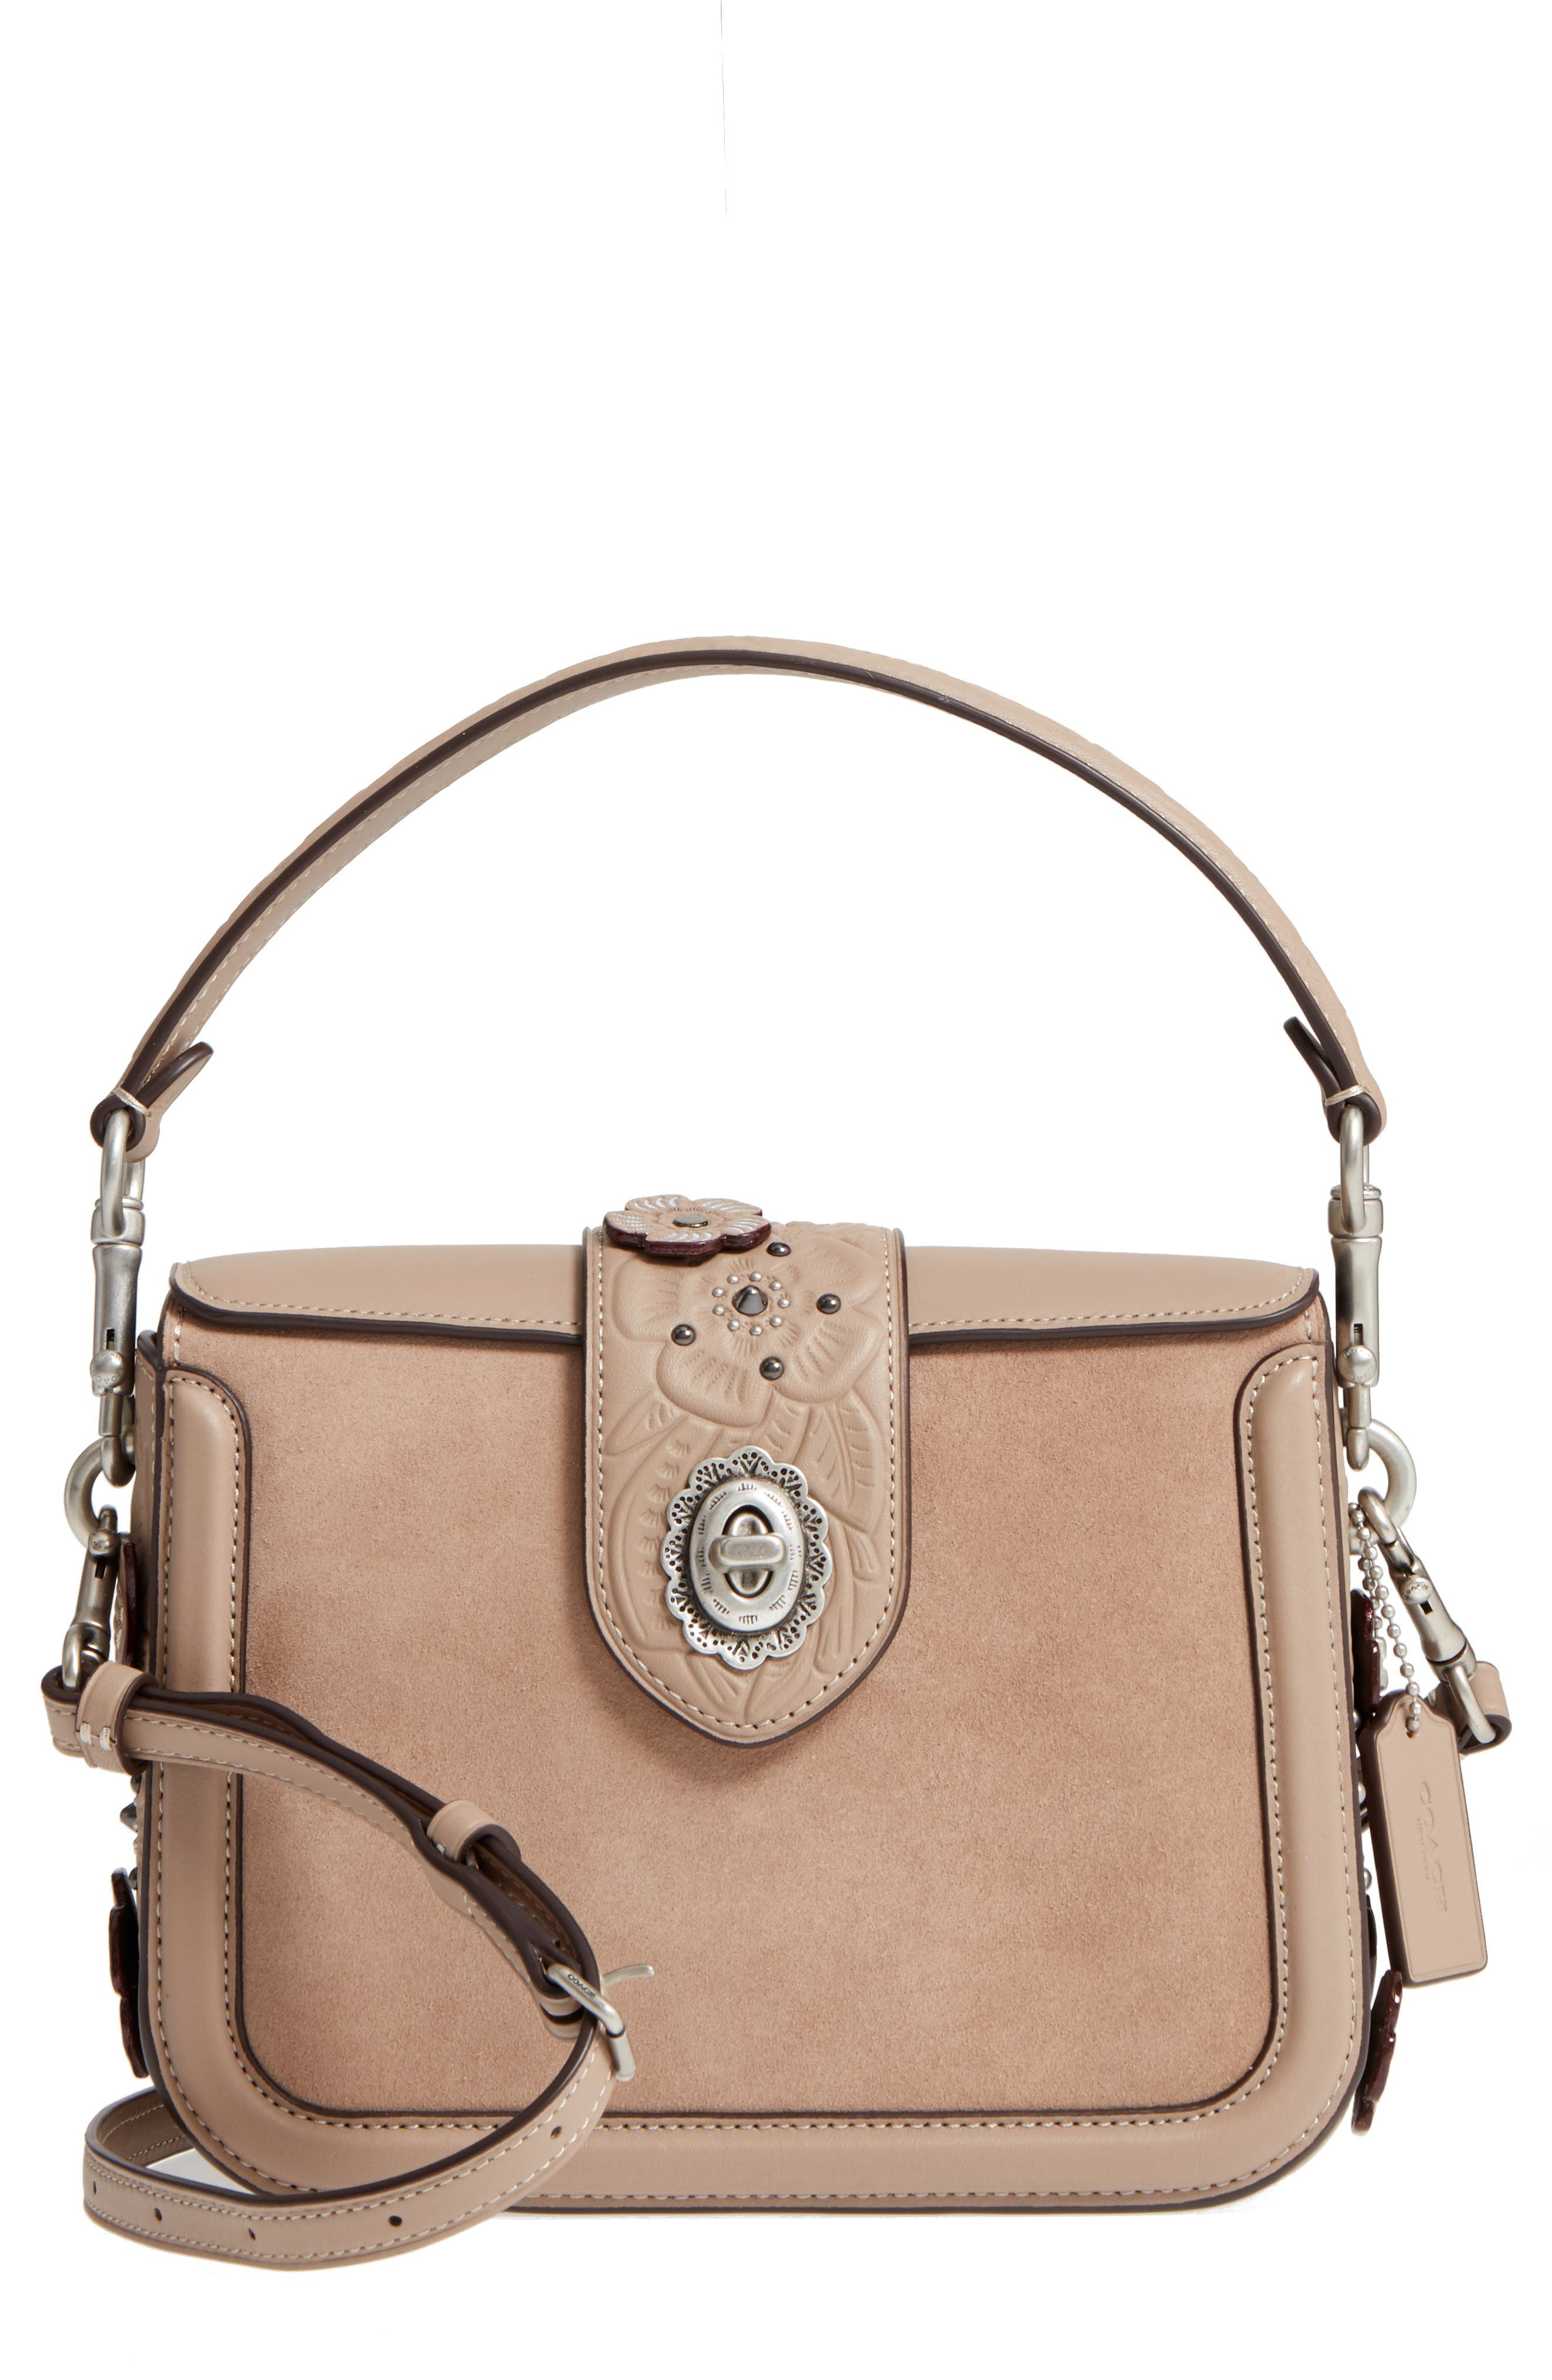 Page Tea Rose Tooled Calfskin Leather Top Handle Satchel,                         Main,                         color, 020